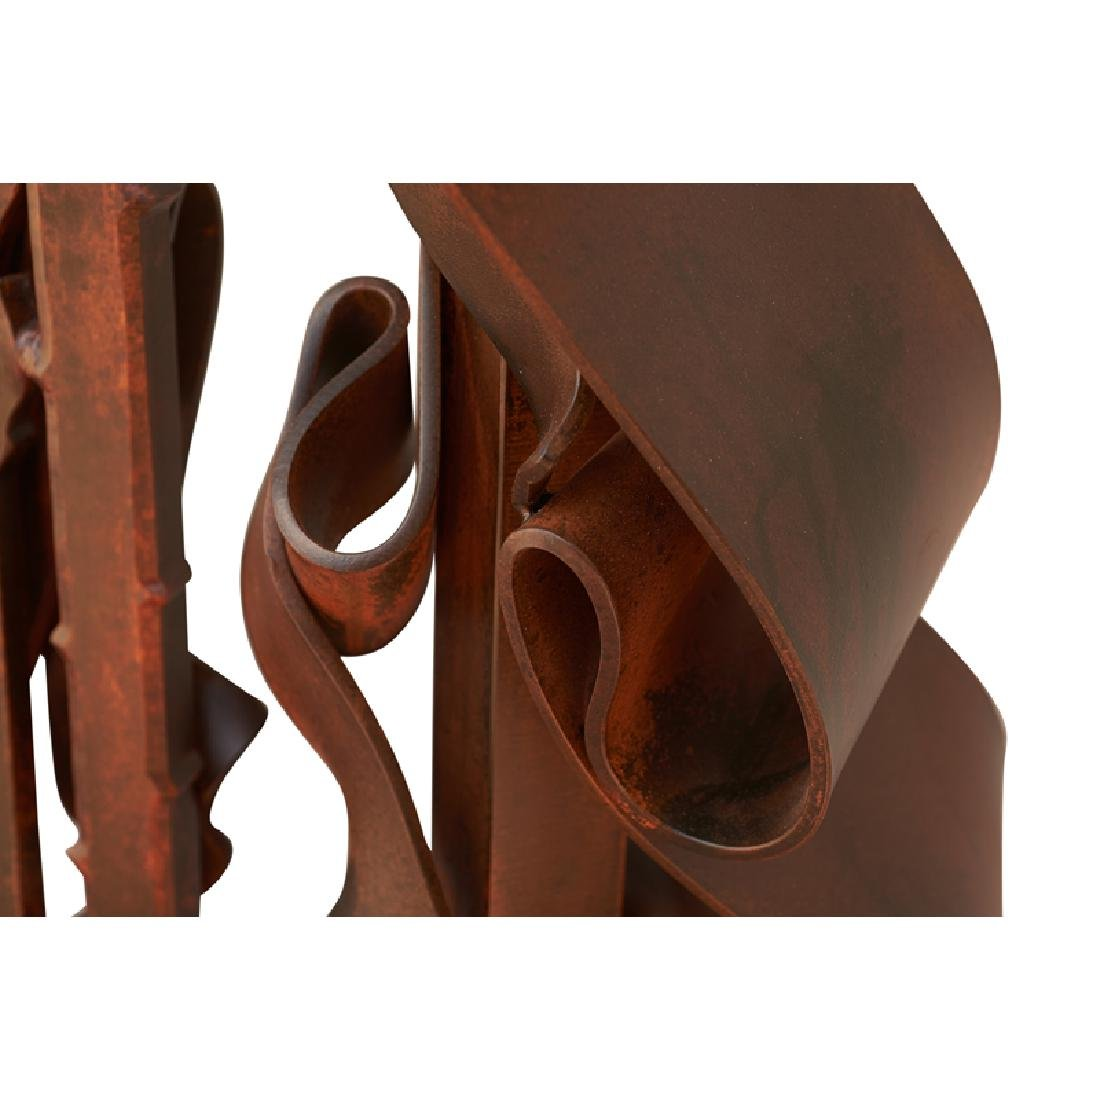 ALBERT PALEY Untitled (Garden Gate) - 7